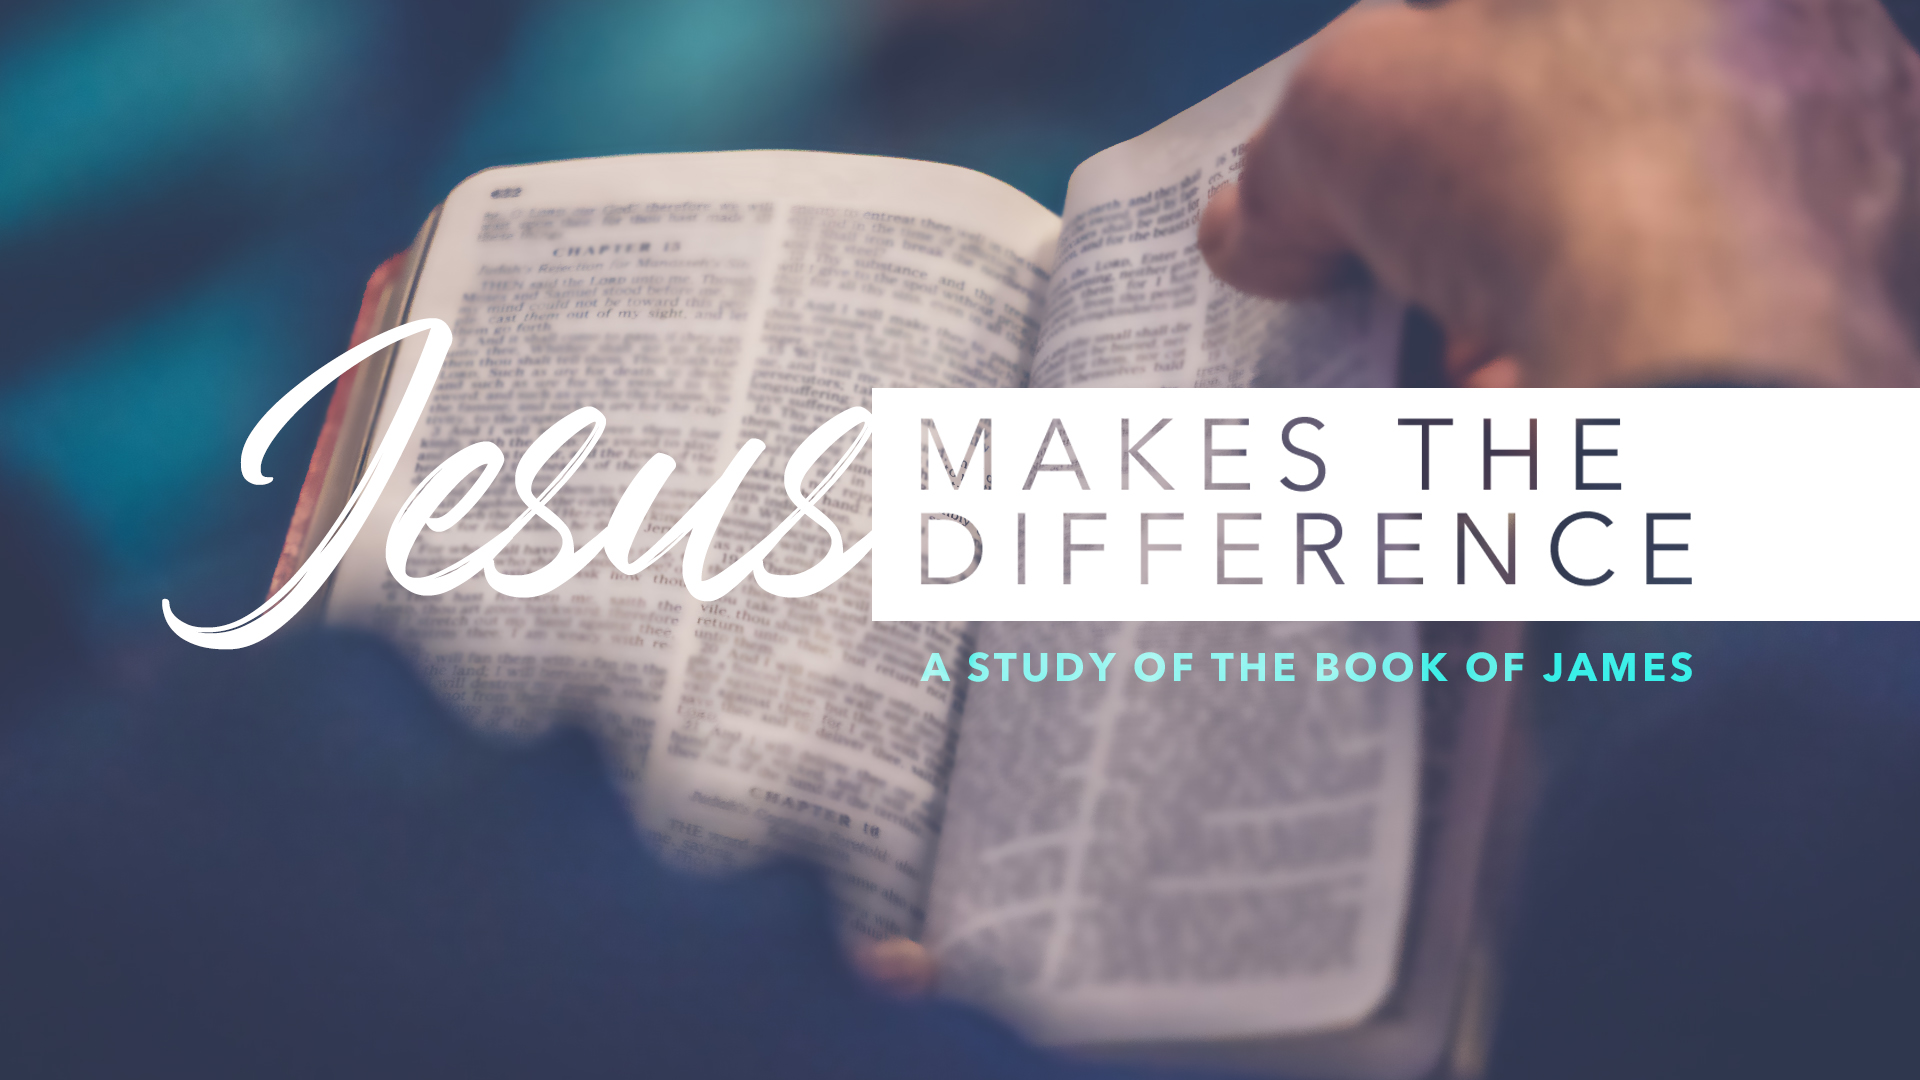 Is It True - Jesus Makes the Difference